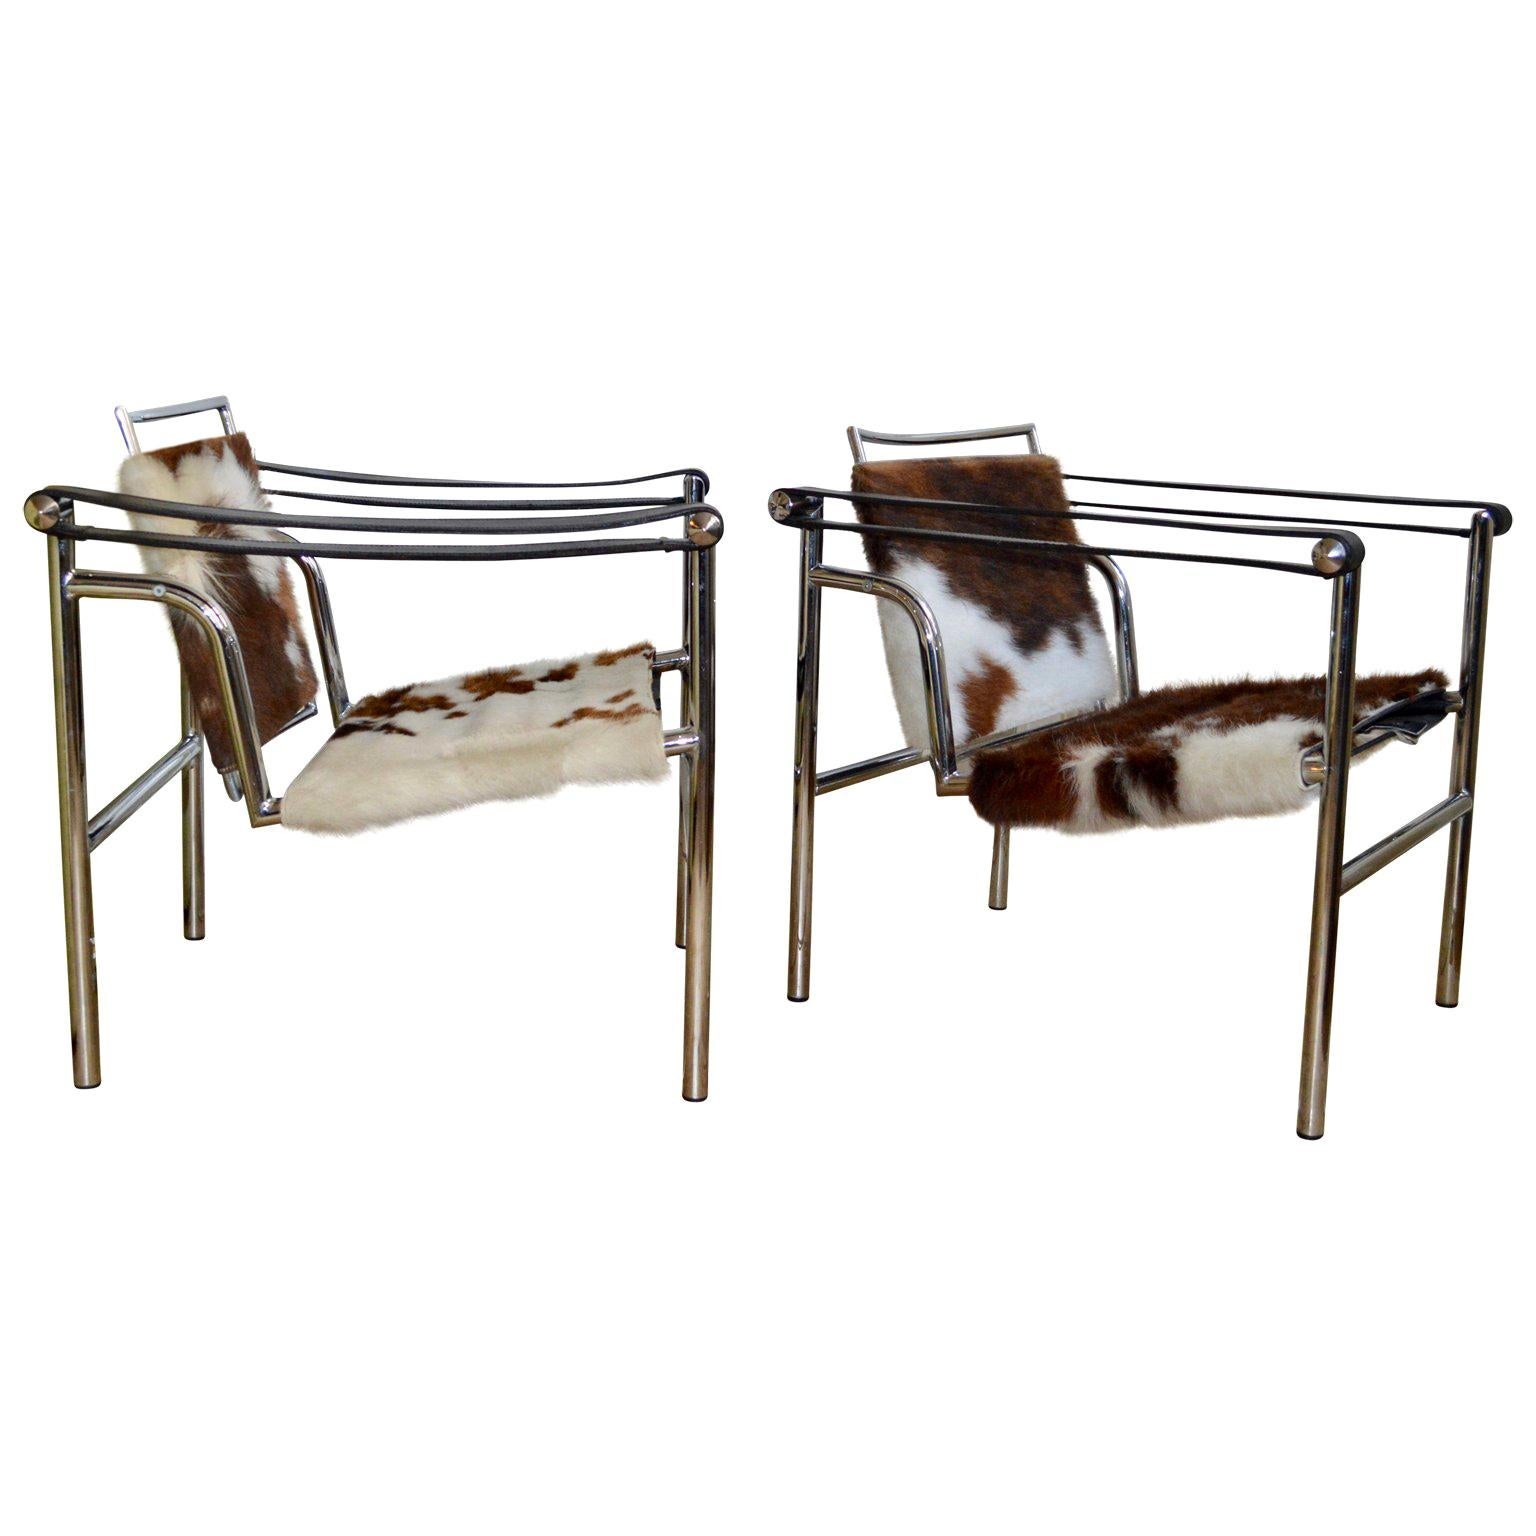 Pair of LC1 Sling Chairs in Pony Skin. For Sale  sc 1 st  1stDibs & Pair of LC1 Sling Chairs in Pony Skin. For Sale at 1stdibs